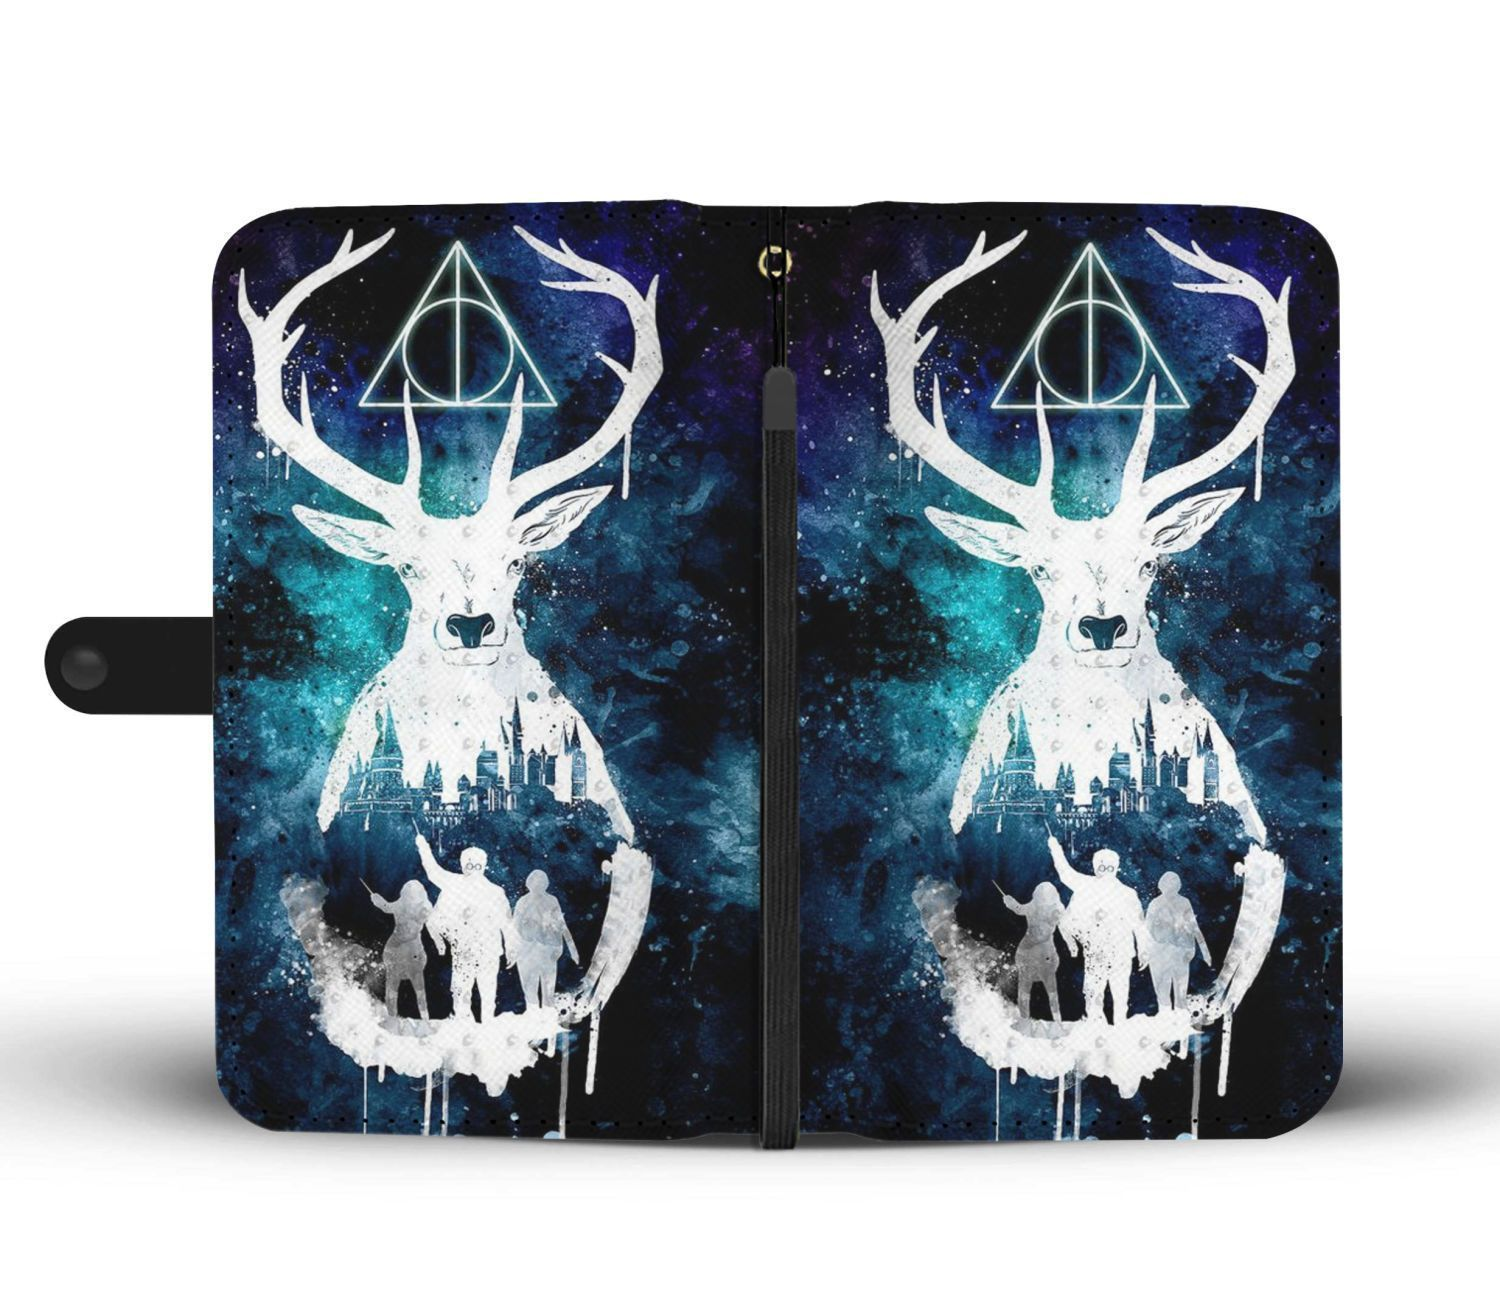 ce053b0f5 Sign of the Deathly Hallows Harry Potter Wallet Phone Case ...